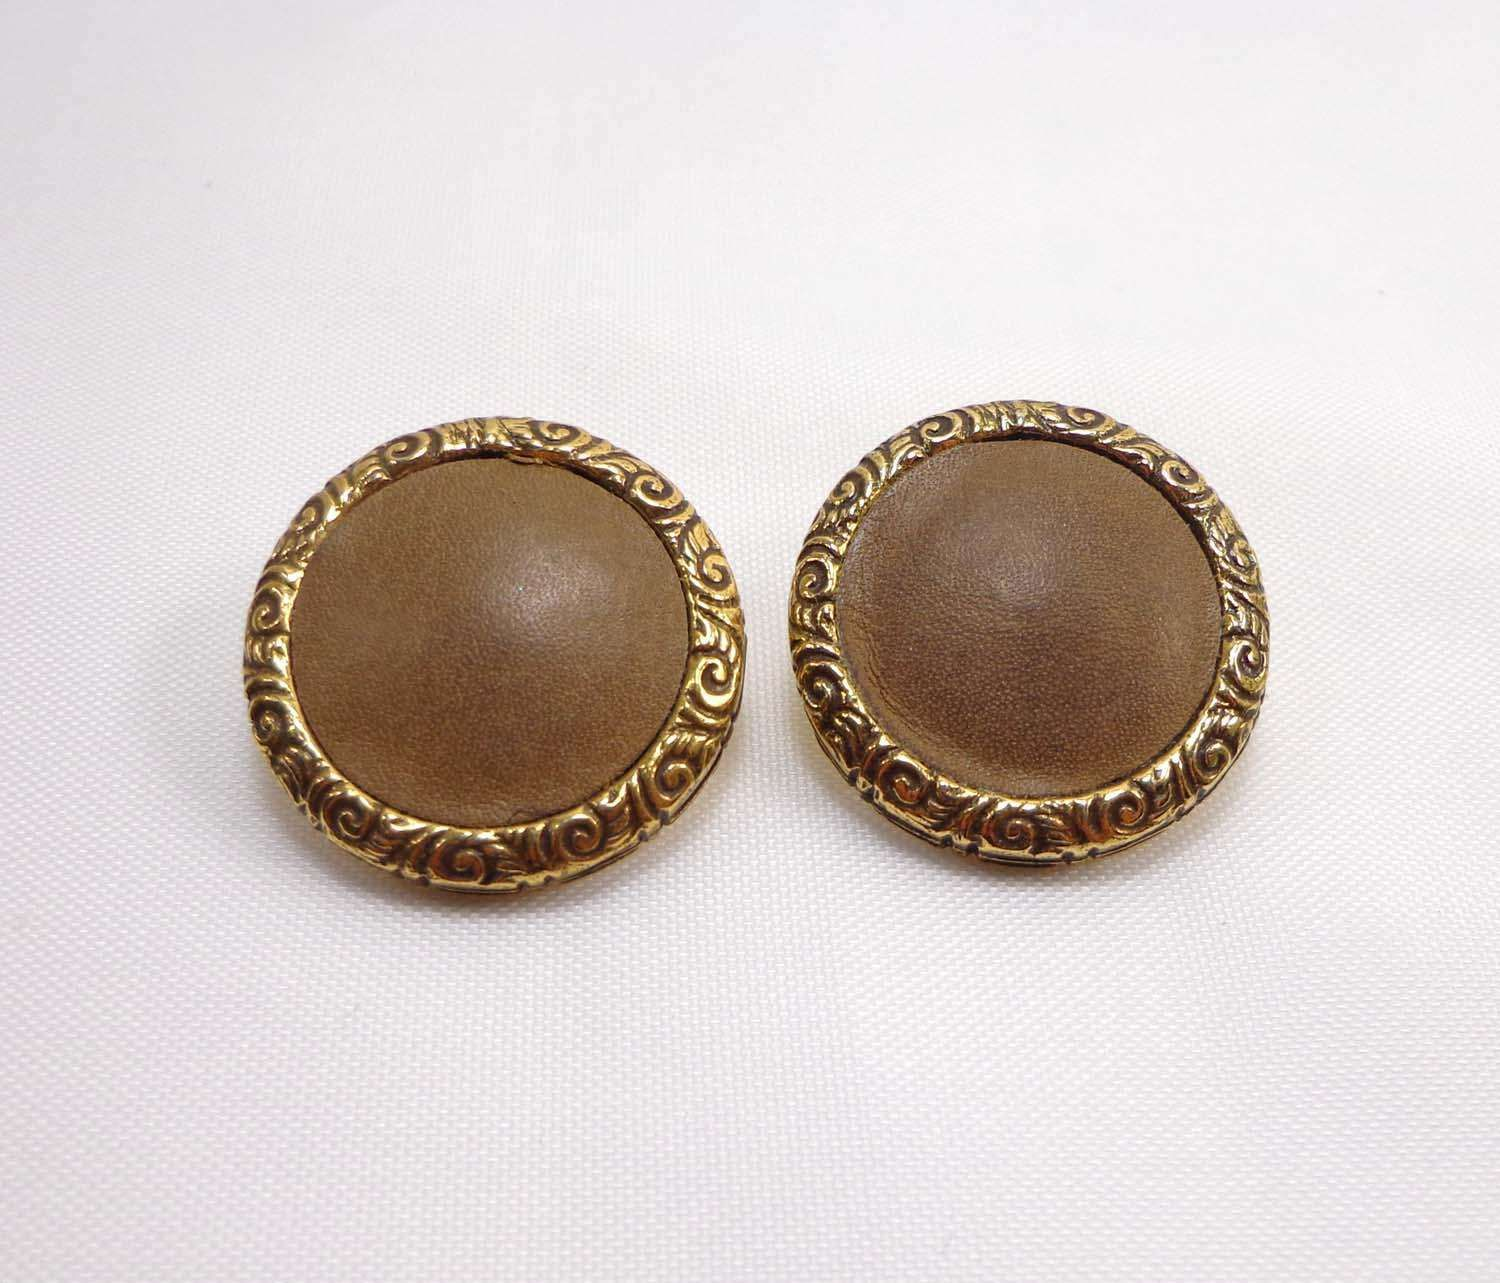 Bergere Earrings Signed Clip Ons Clip Backs Brown Leather Gold Metal Scroll 921 by JellyBellyJewels on Etsy